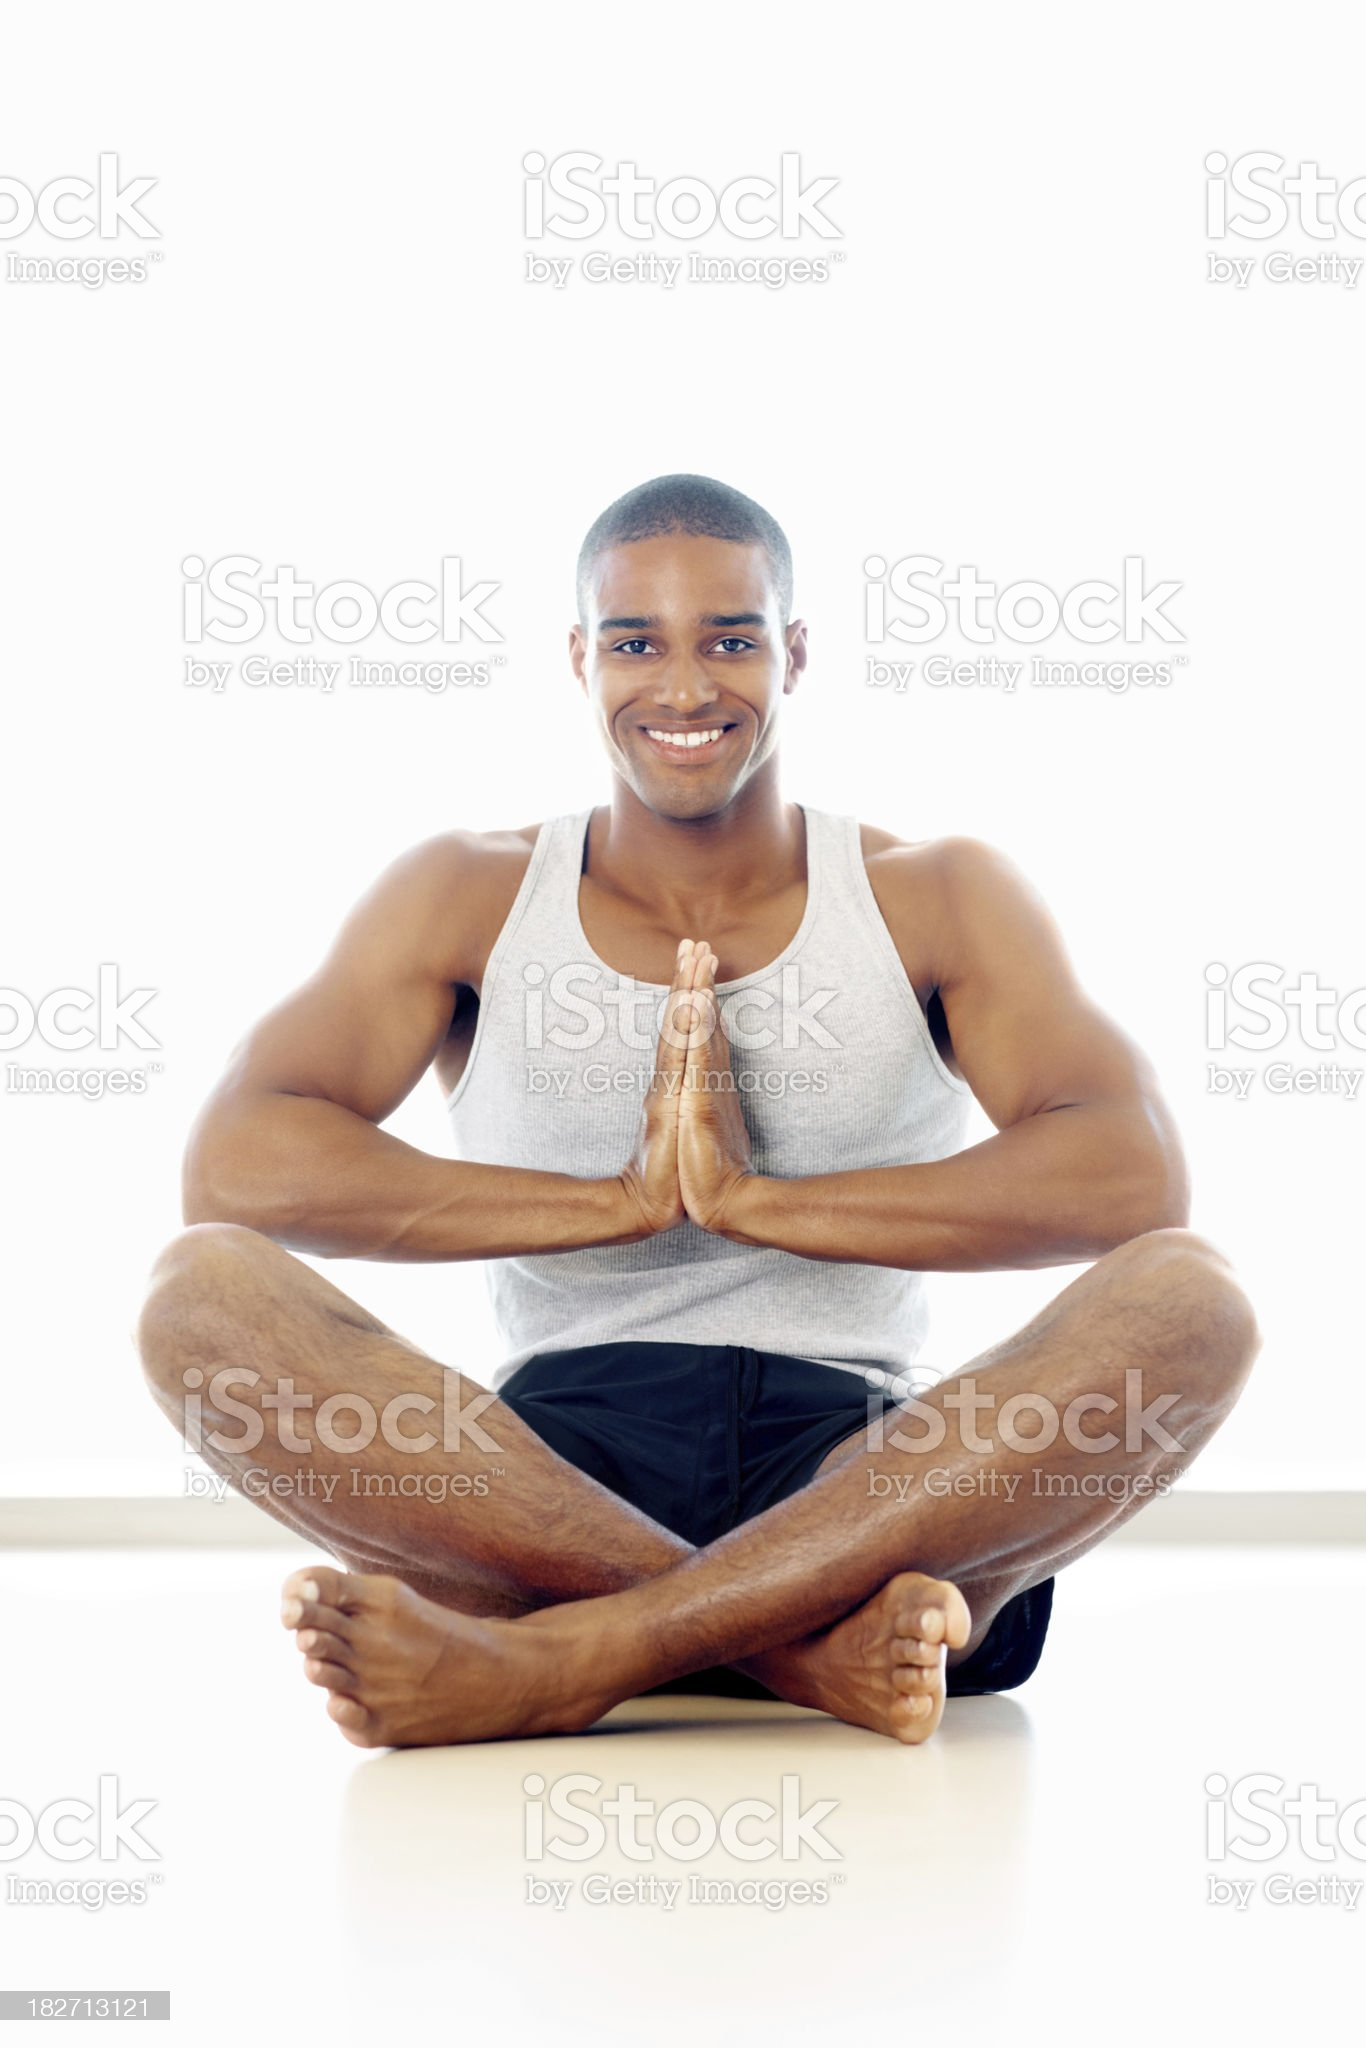 Happy healthy guy meditating in a yogatic pose on white royalty-free stock photo